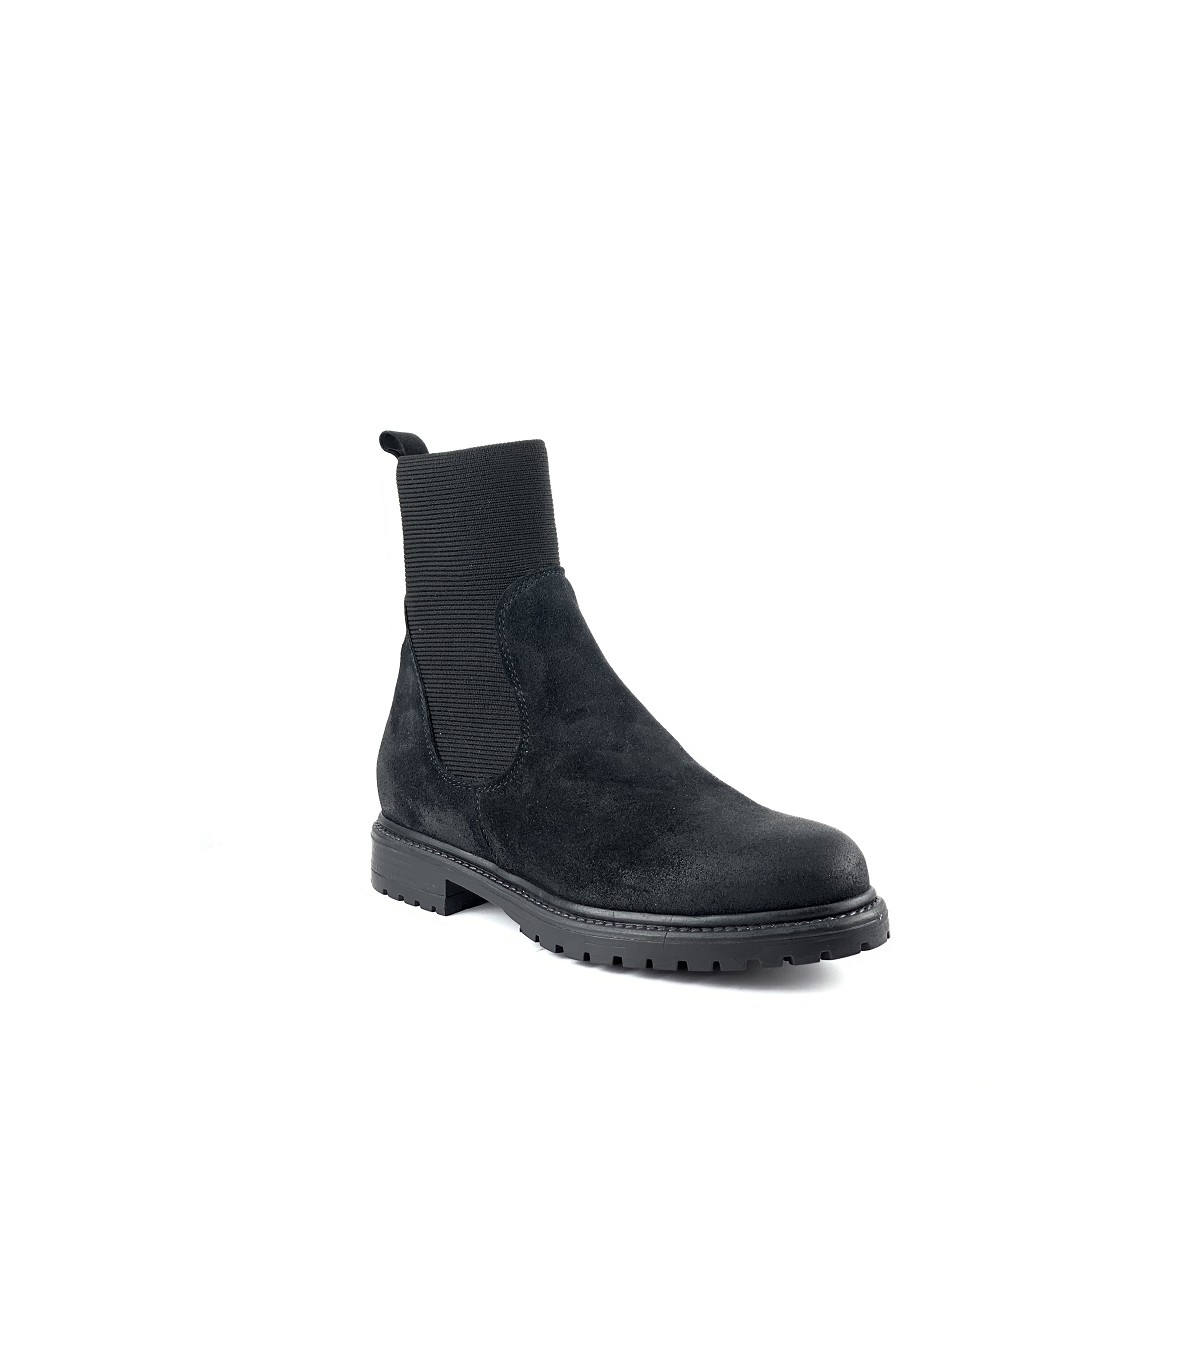 Evelyne NoirUnivers Chaussures Cuir Reqins Bottines Ygbf6yv7